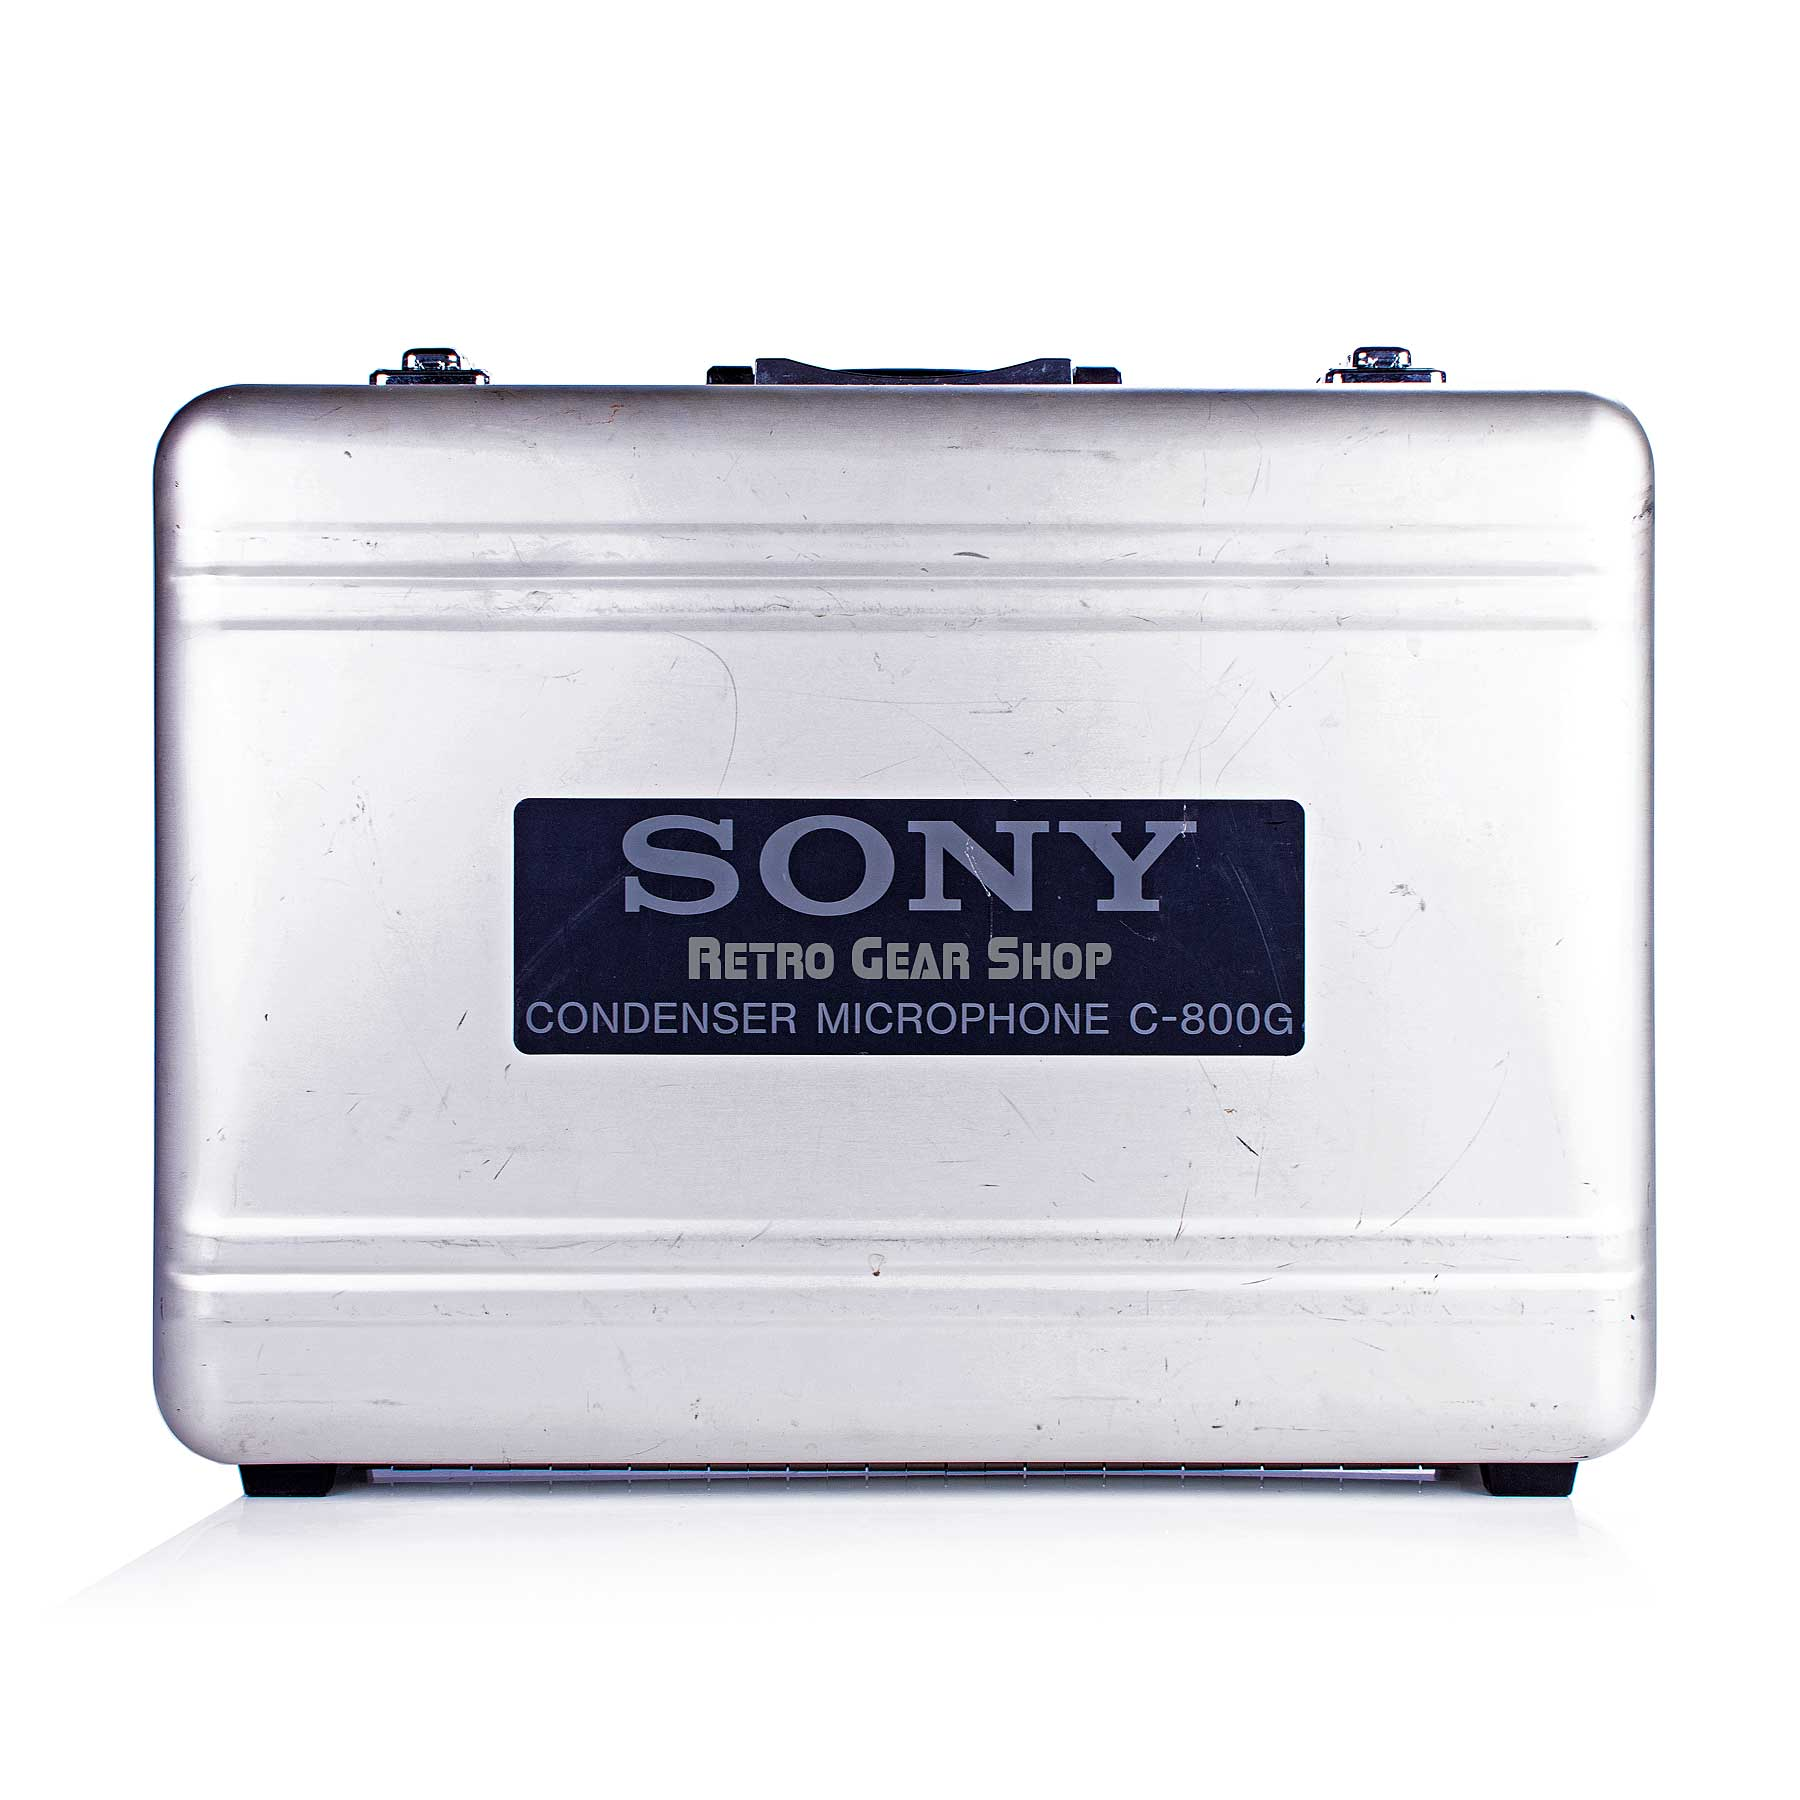 Sony C-800G Microphone Case